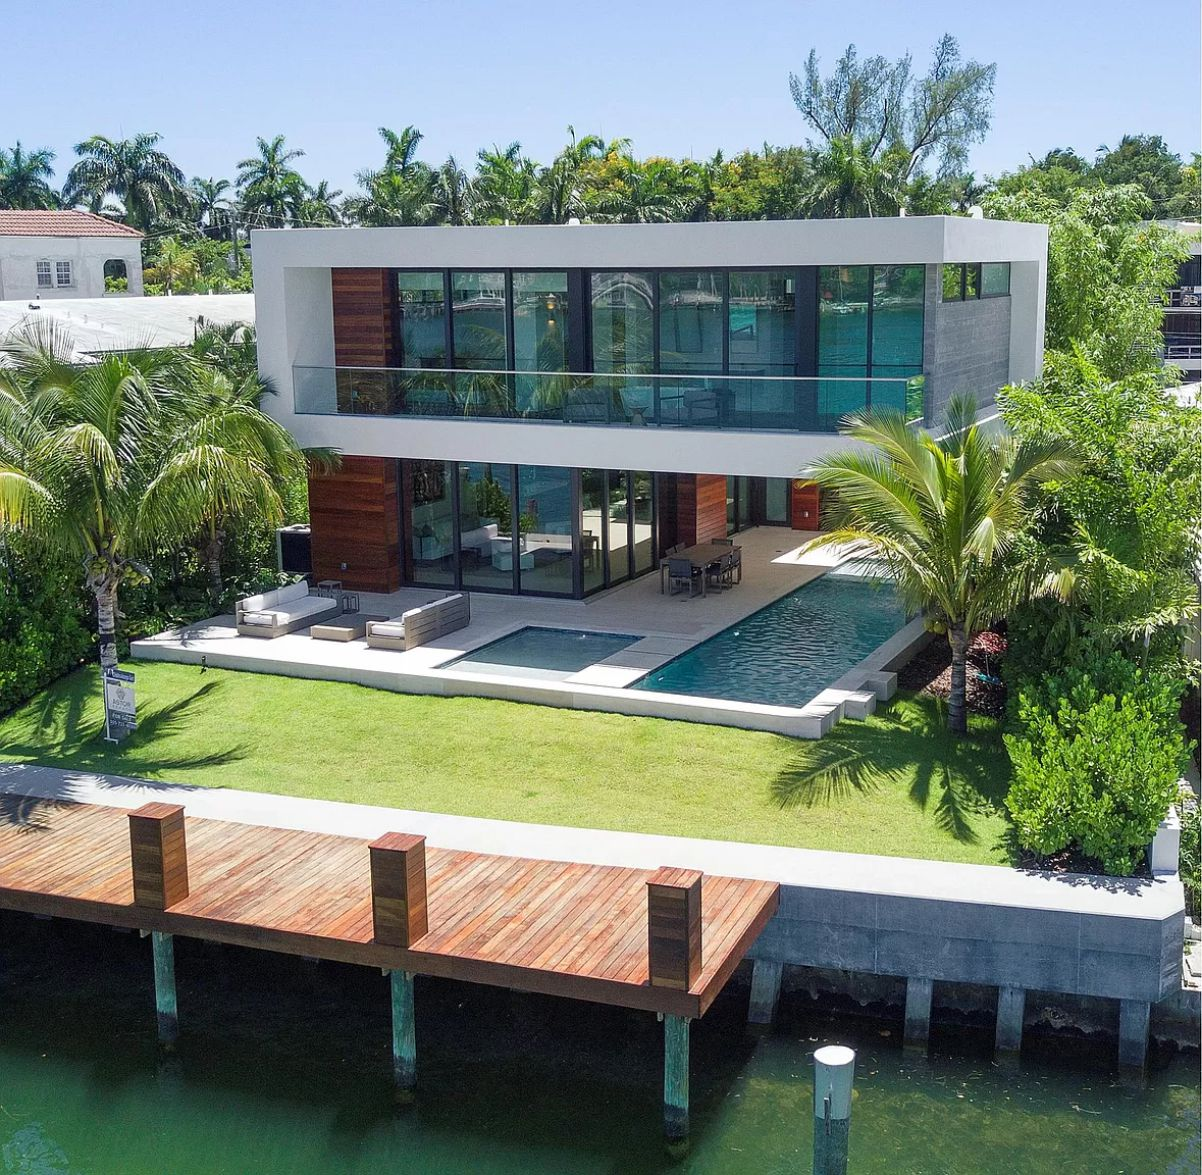 Tropical Modern Waterfront Home in Miami Beach on Market